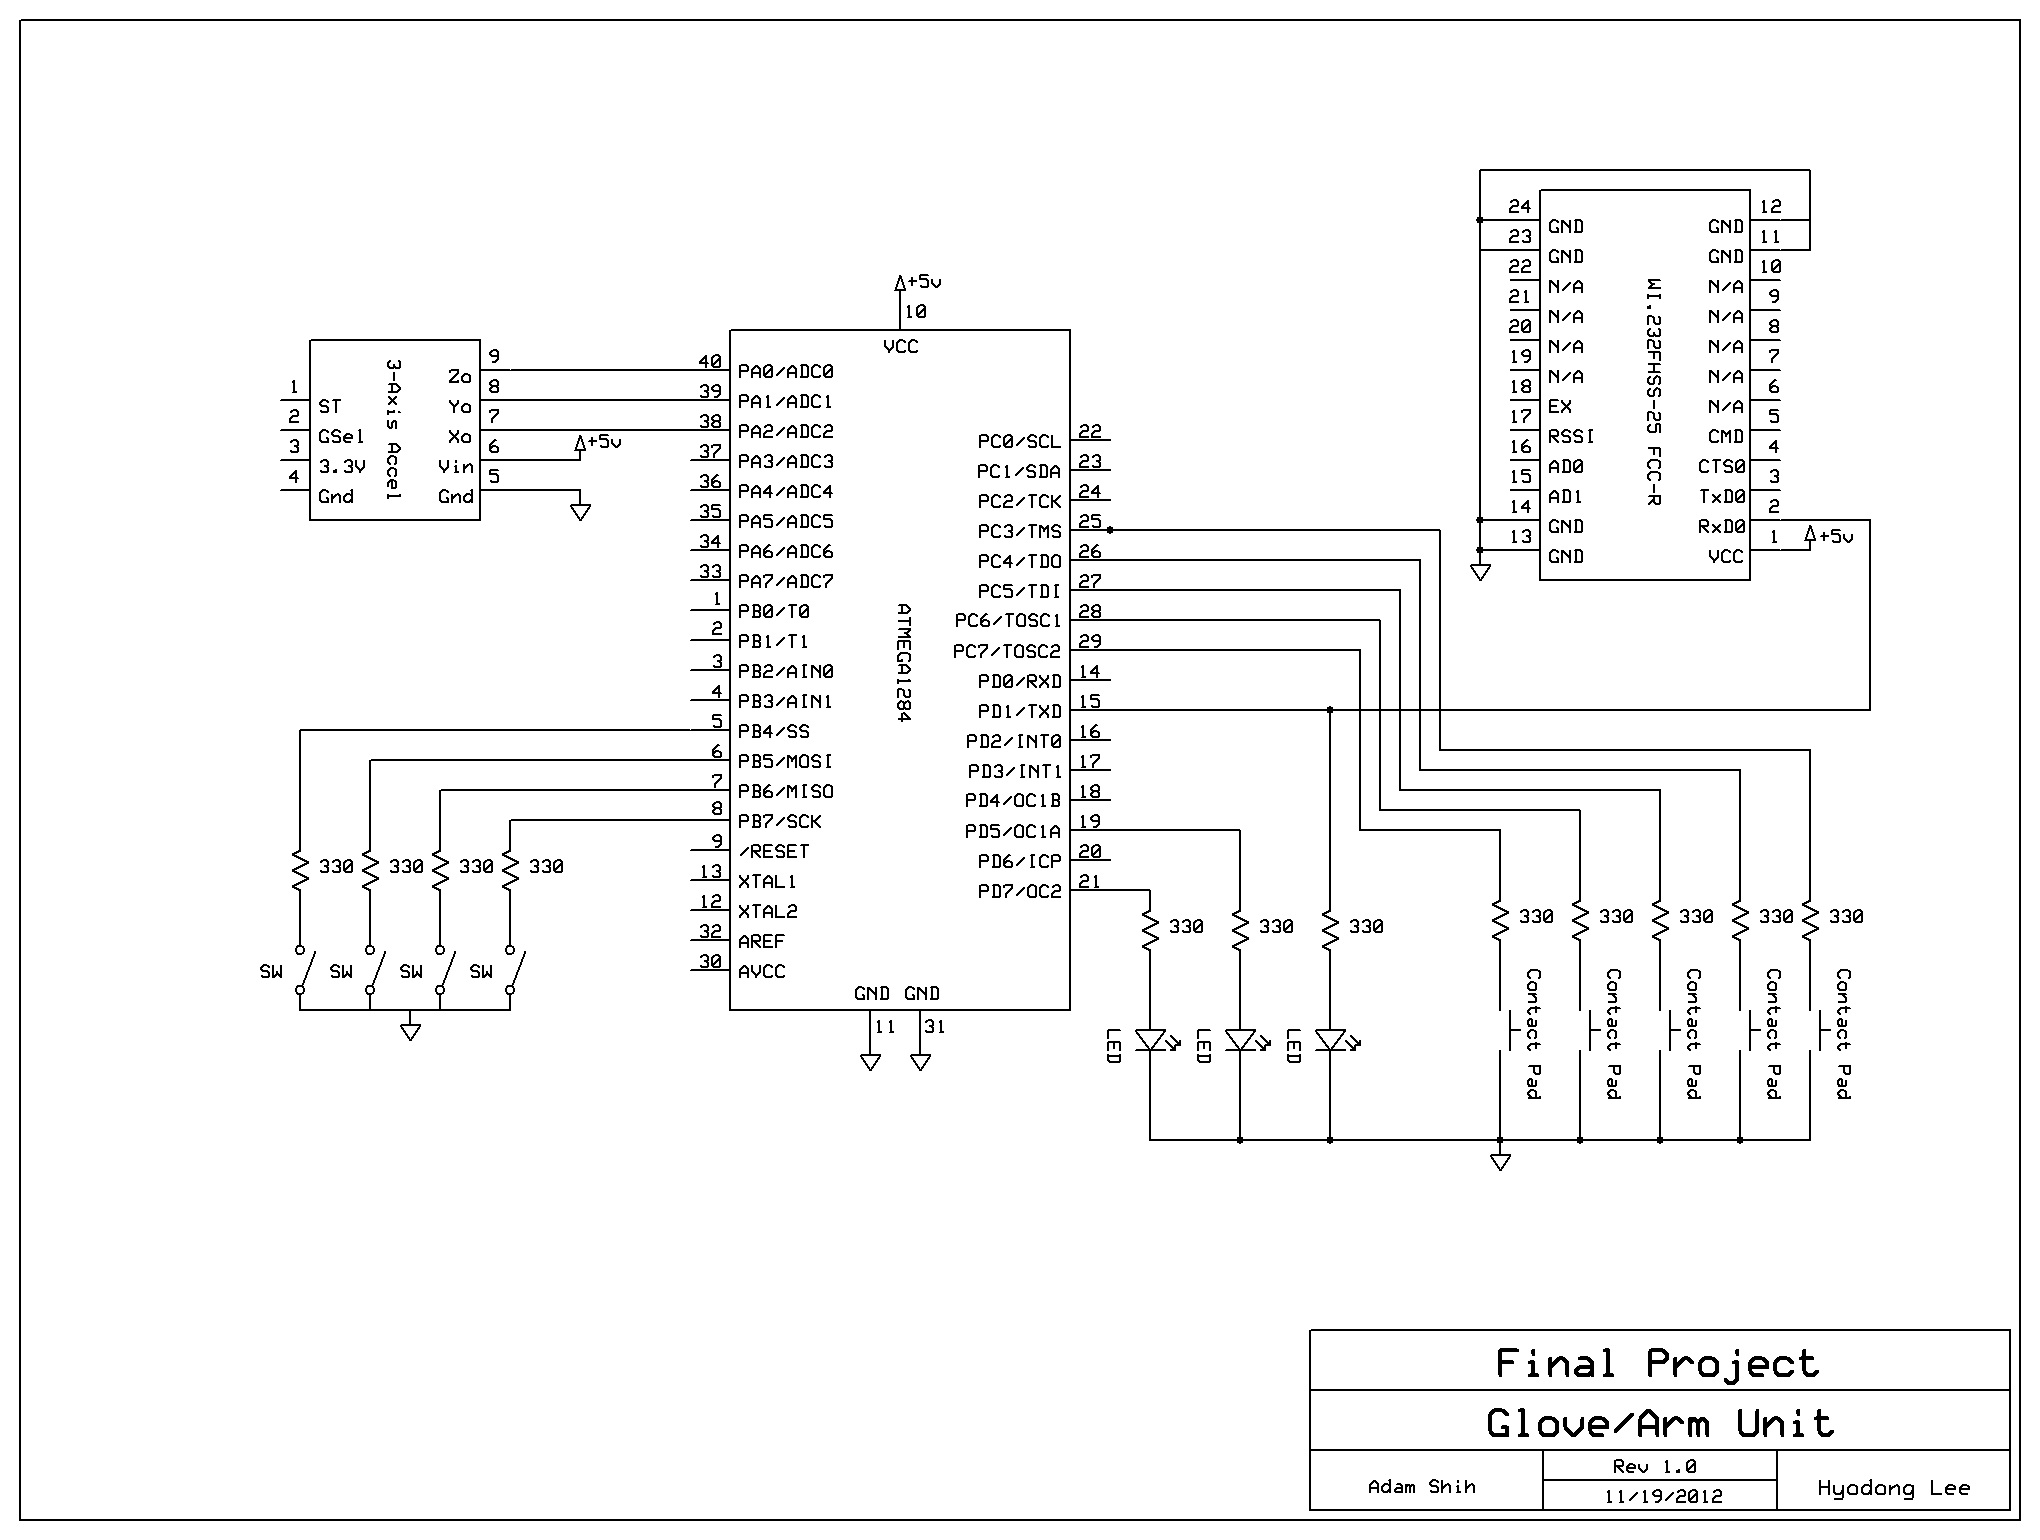 g_schematic Usb Wiring Diagram on usb charging diagram, usb schematic diagram, usb connectors diagram, usb wire connections, usb controller diagram, usb outlets diagram, usb strip, usb block diagram, usb outlet adapter, usb pinout, usb switch, usb cable, usb color diagram, usb wire schematic, usb socket diagram, circuit diagram, usb motherboard diagram, usb computer diagram, usb soldering diagram, usb splitter diagram,